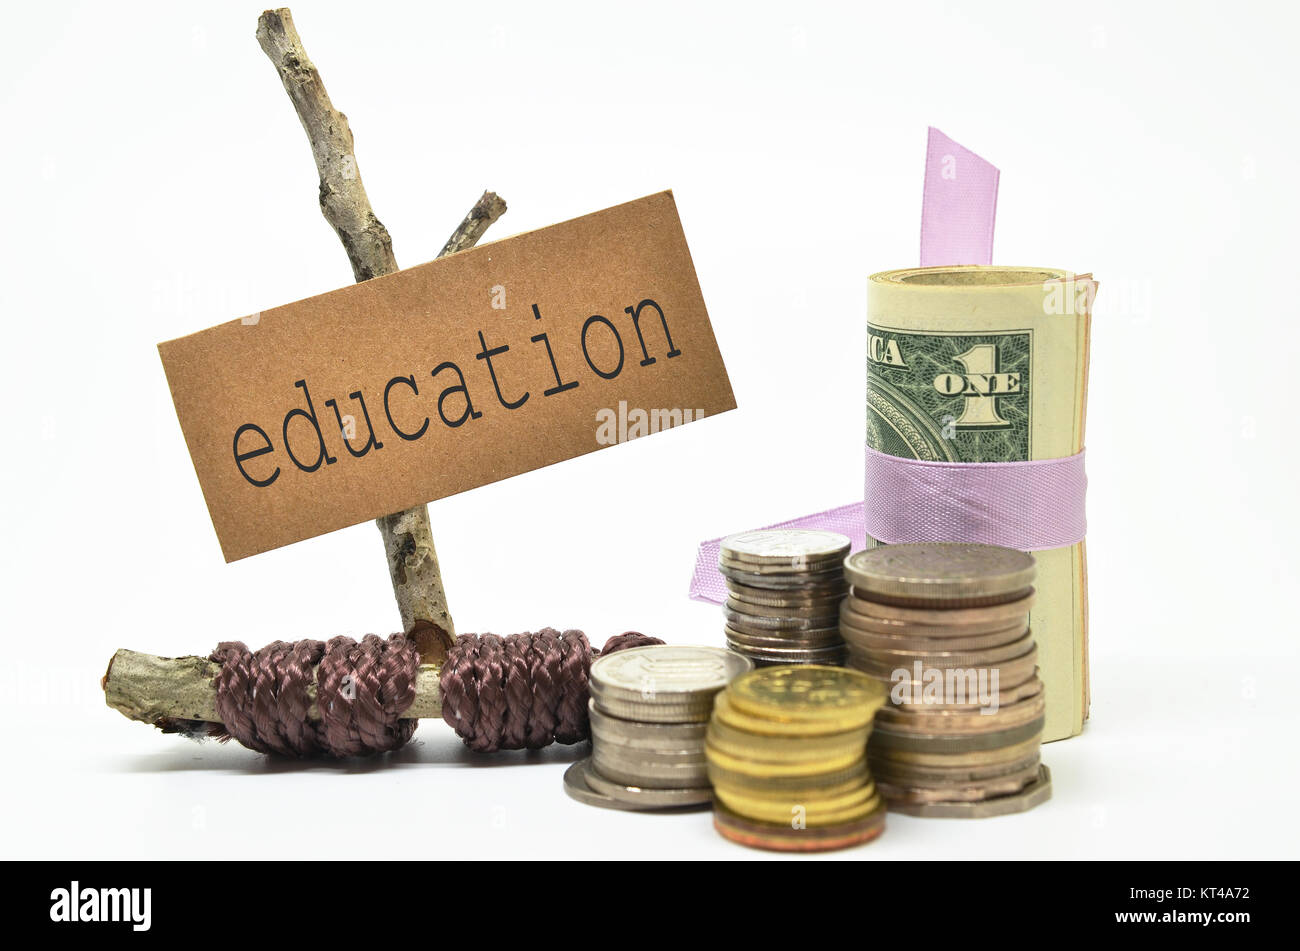 Coins and money with education label - Stock Image